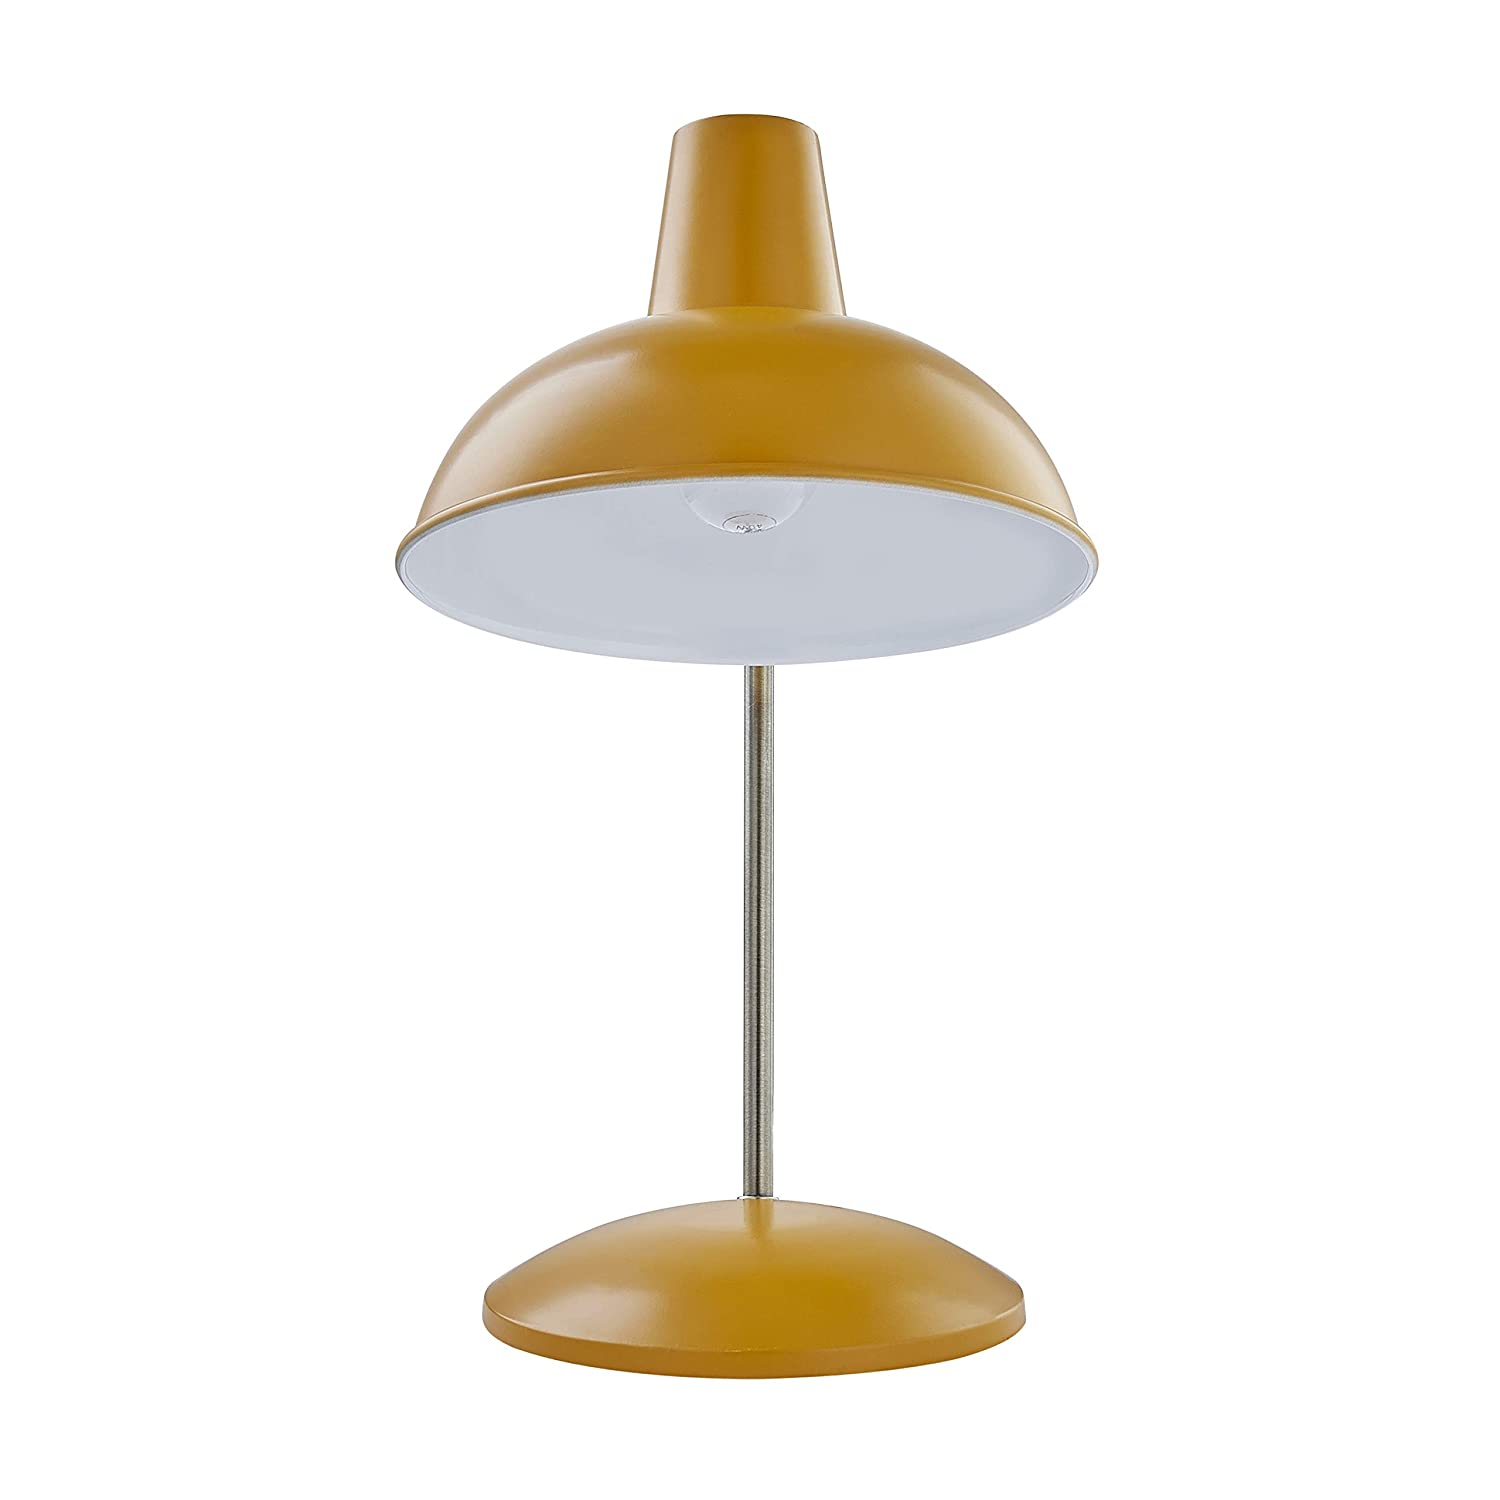 Light Society Mustard Yellow Retro Hylight Desk Lamp With Antique